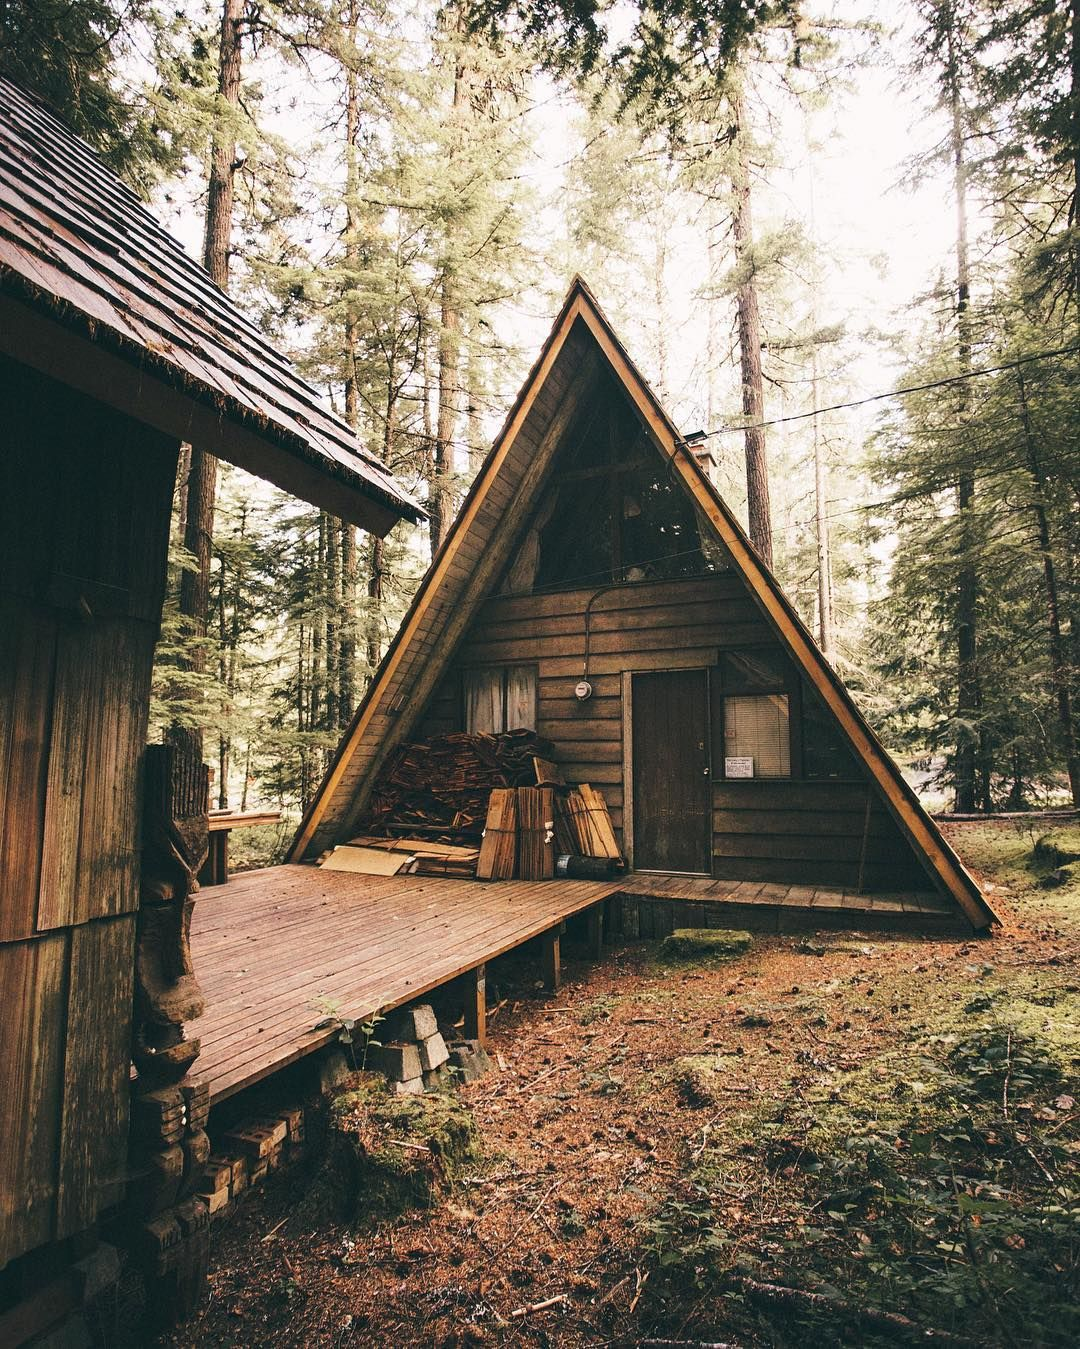 Log Cabin Designs Fryeburg Maine: Royal Architectural Institute Of Canada 2016 Young